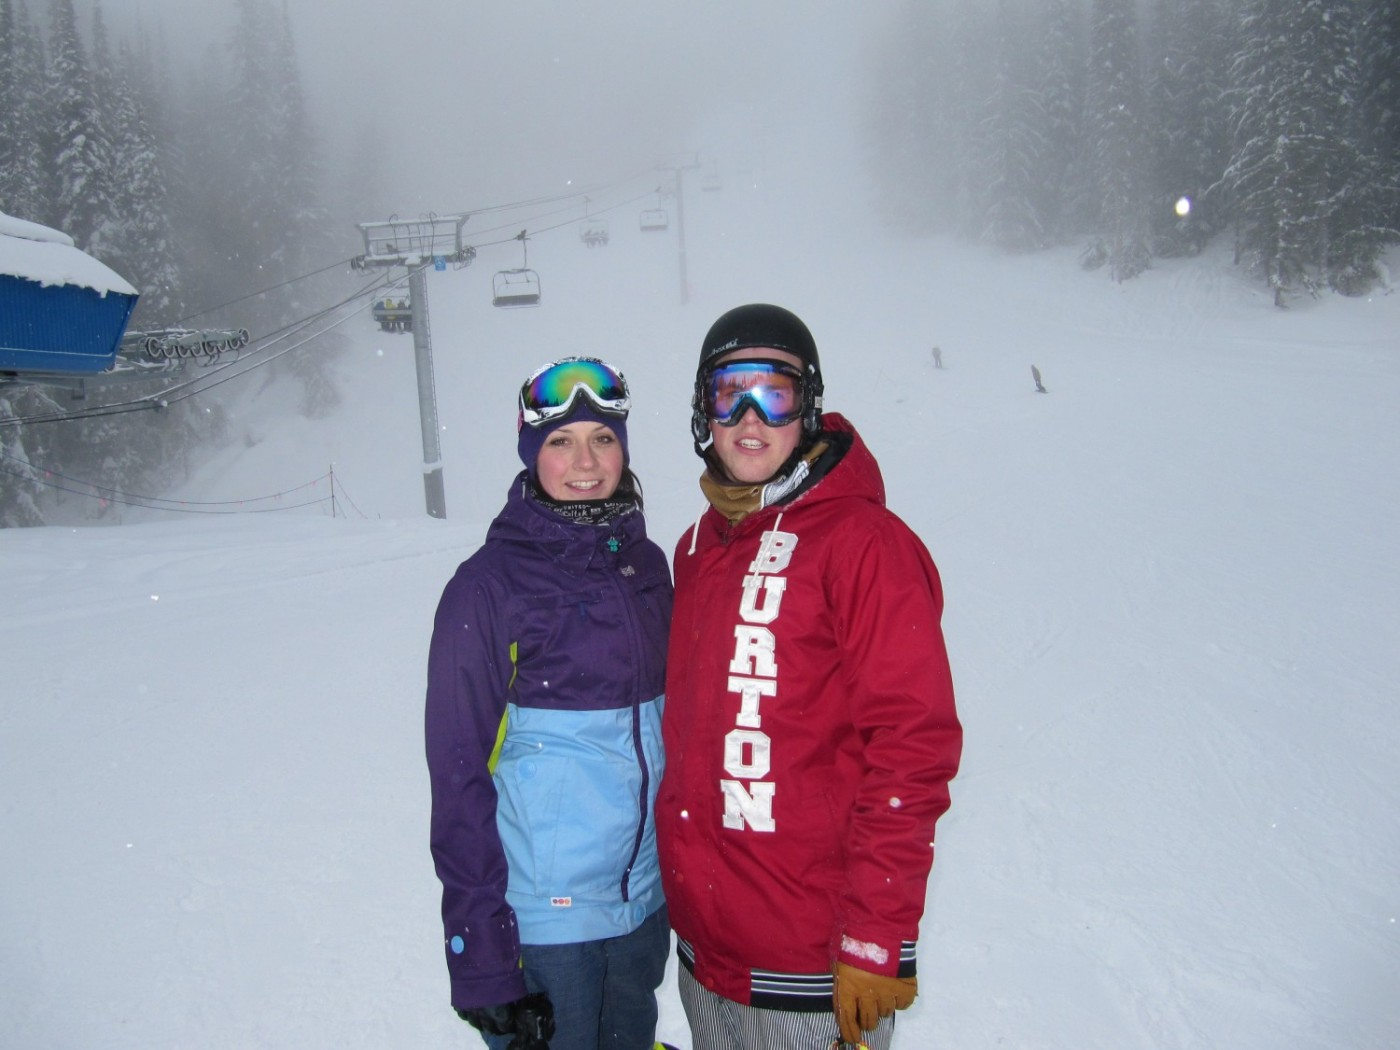 Kristin & Chris Cooknell, the snowboarders, I prefer SNOWBIRD in PHOENIX